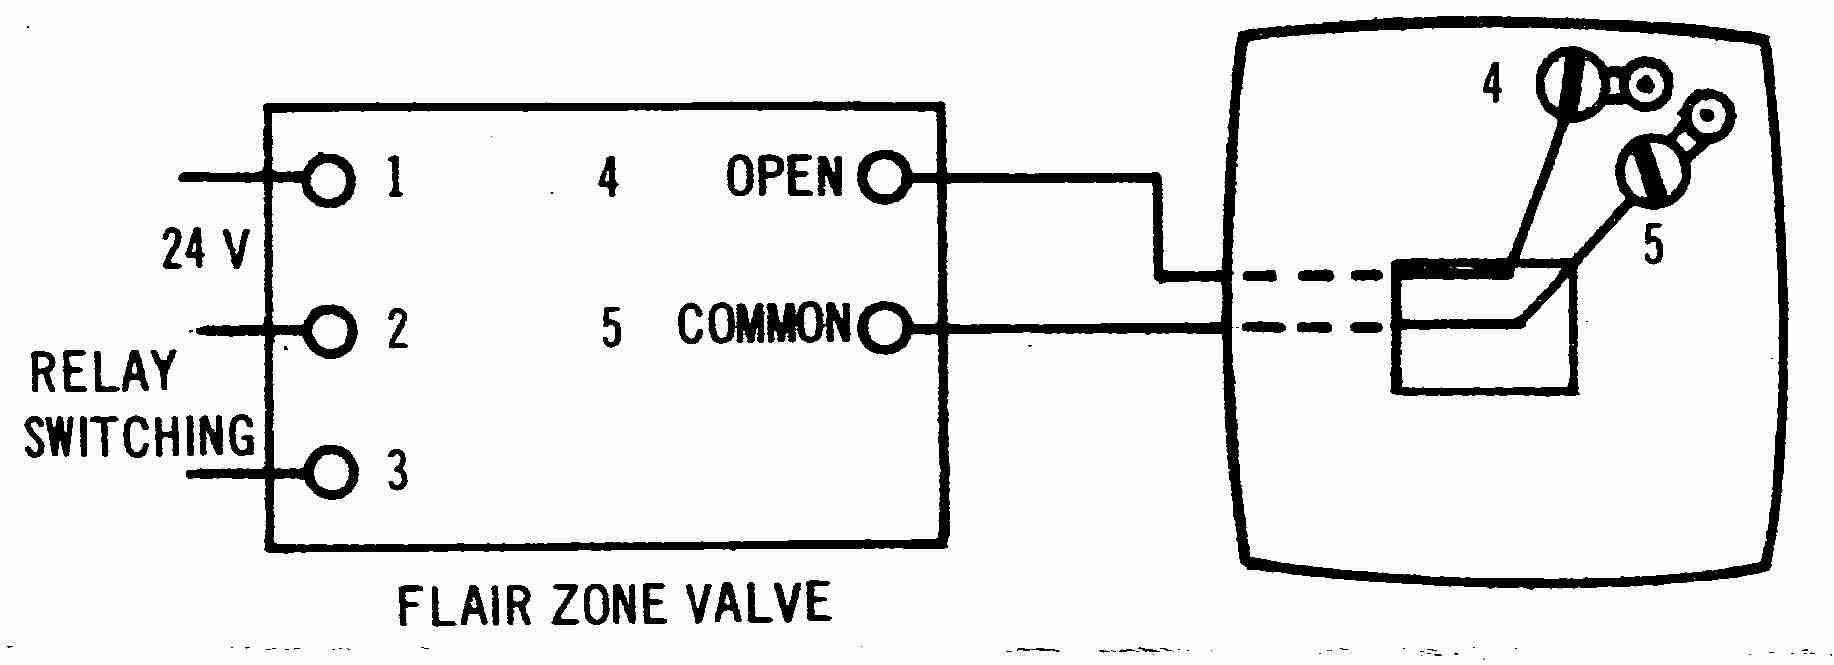 Flair2w_001_DJFc1?resize=665%2C241&ssl=1 white rodgers zone valve wiring diagram wiring diagram White Rodgers Relay Wiring at n-0.co